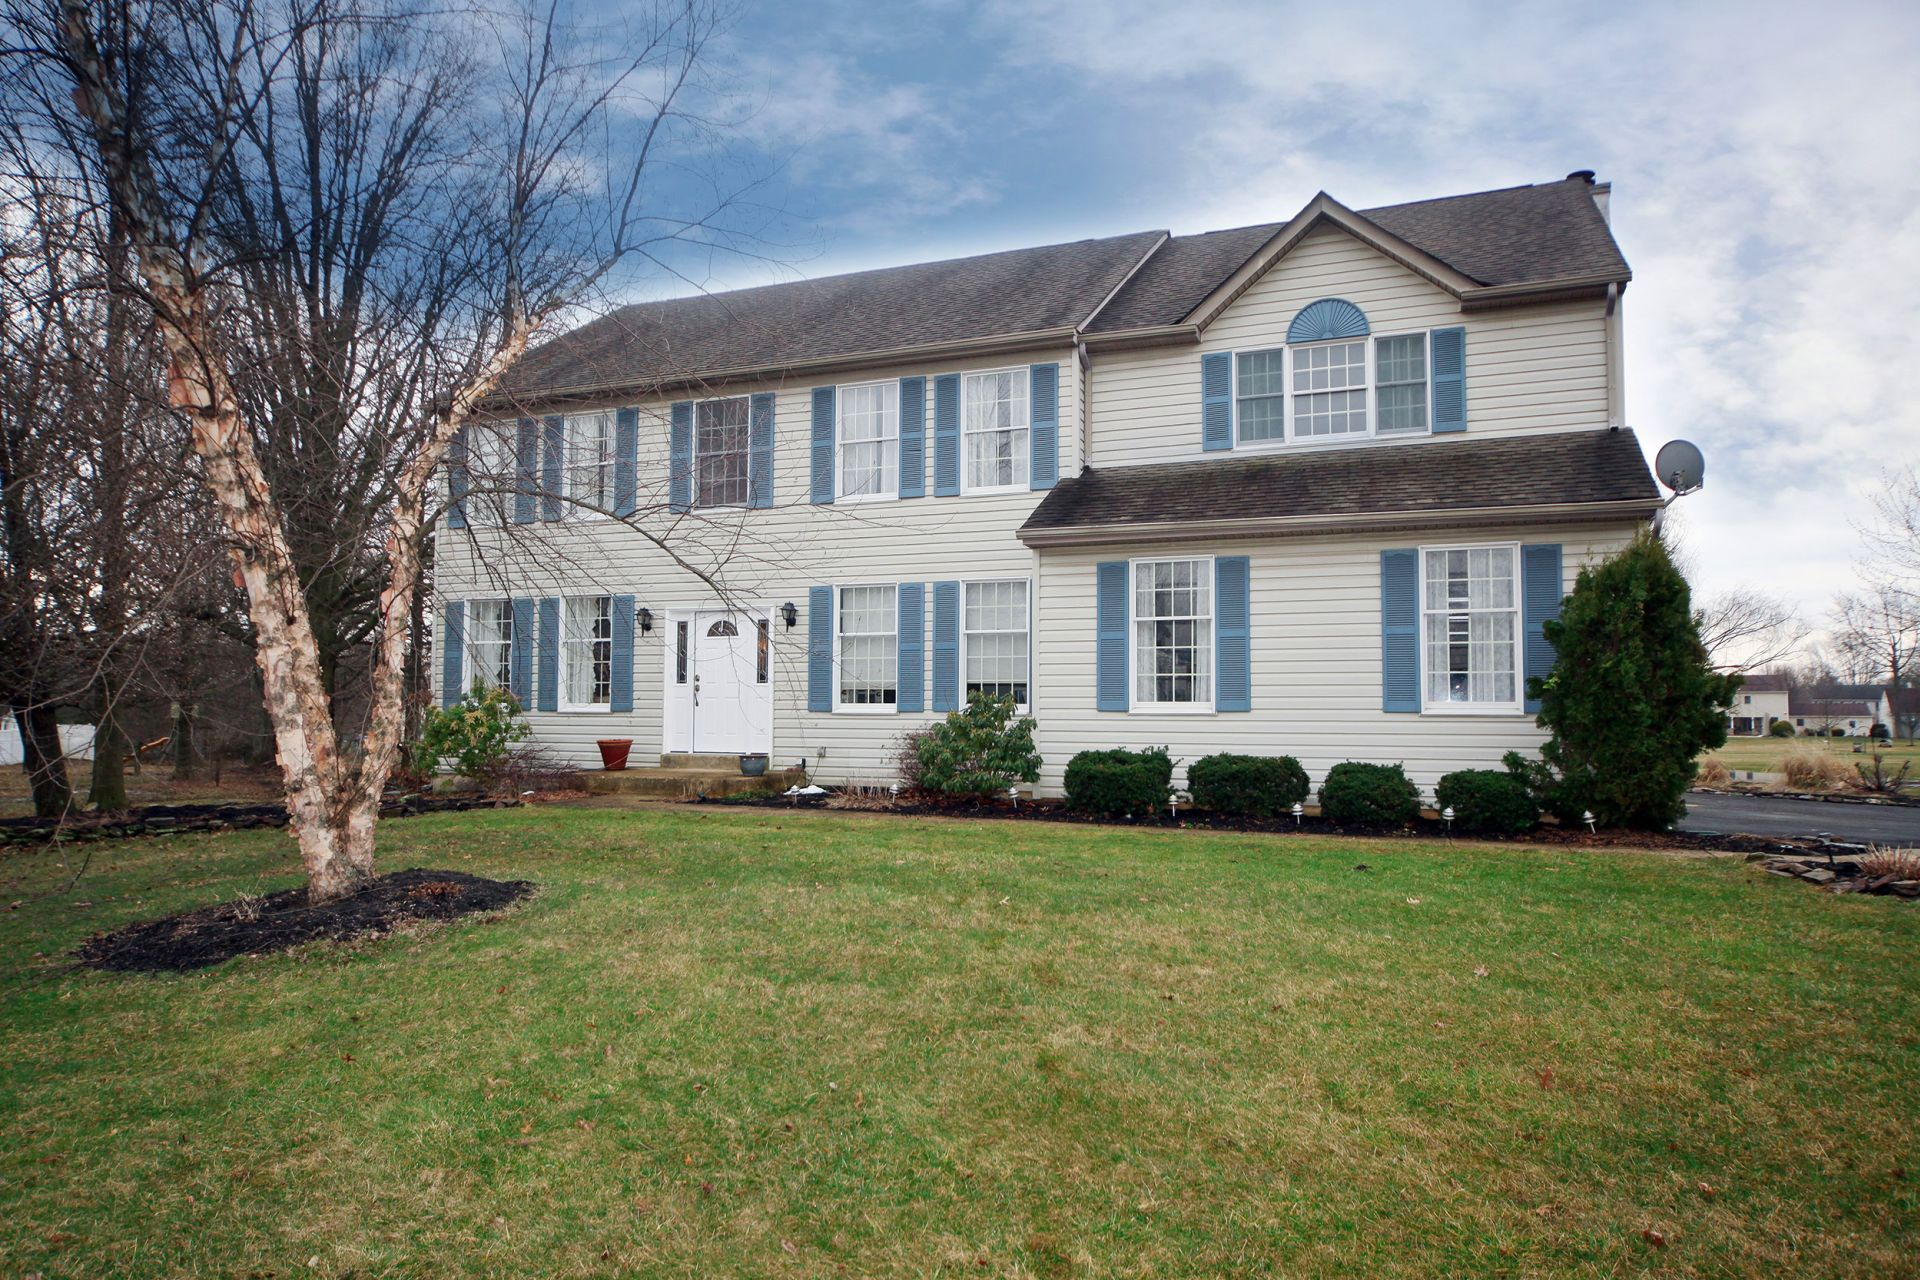 New Home for Sale in Pipersville, PA